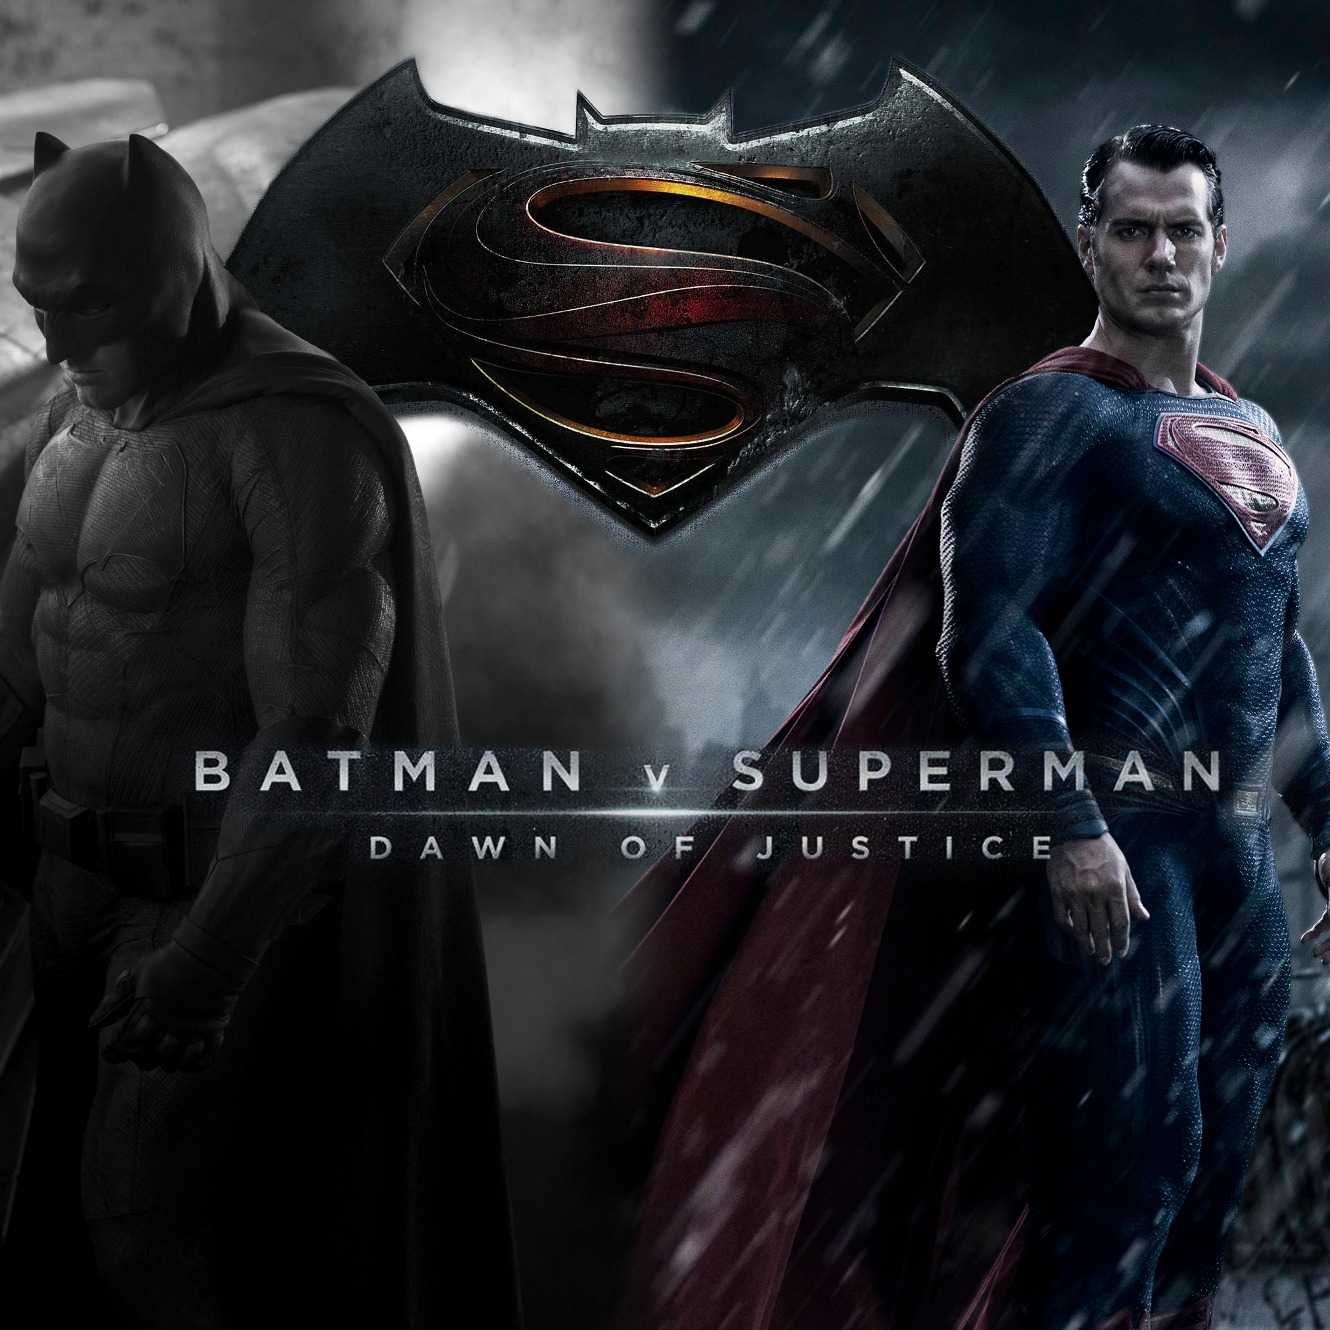 DC Unveils New Batman v Superman Sneak Peek | Batman v Superman